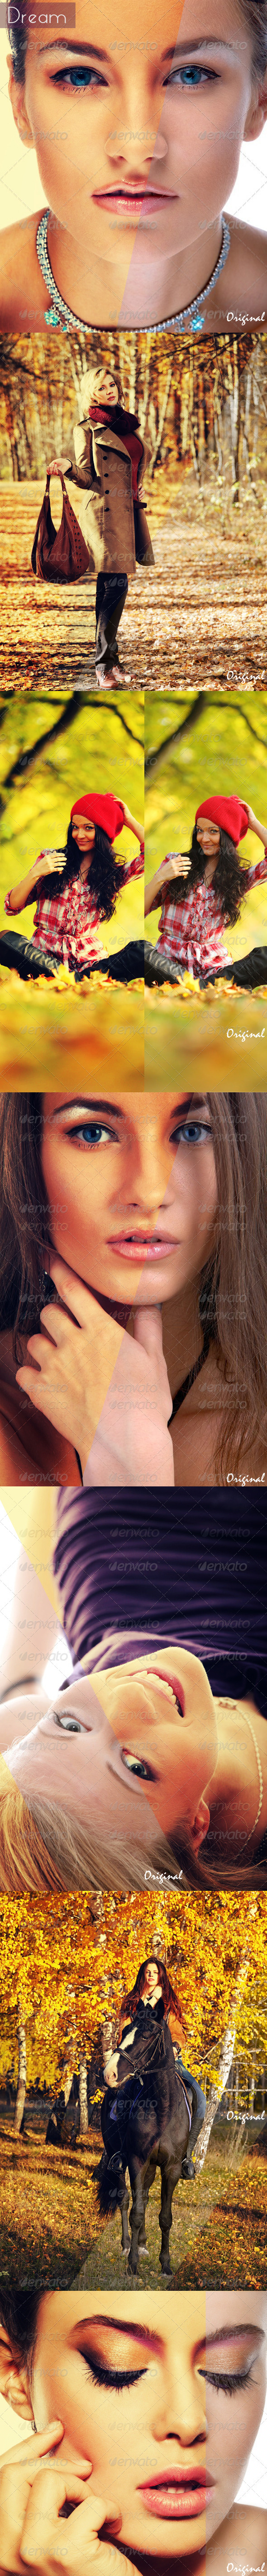 GraphicRiver Photo Effect PS Action 4 4980441